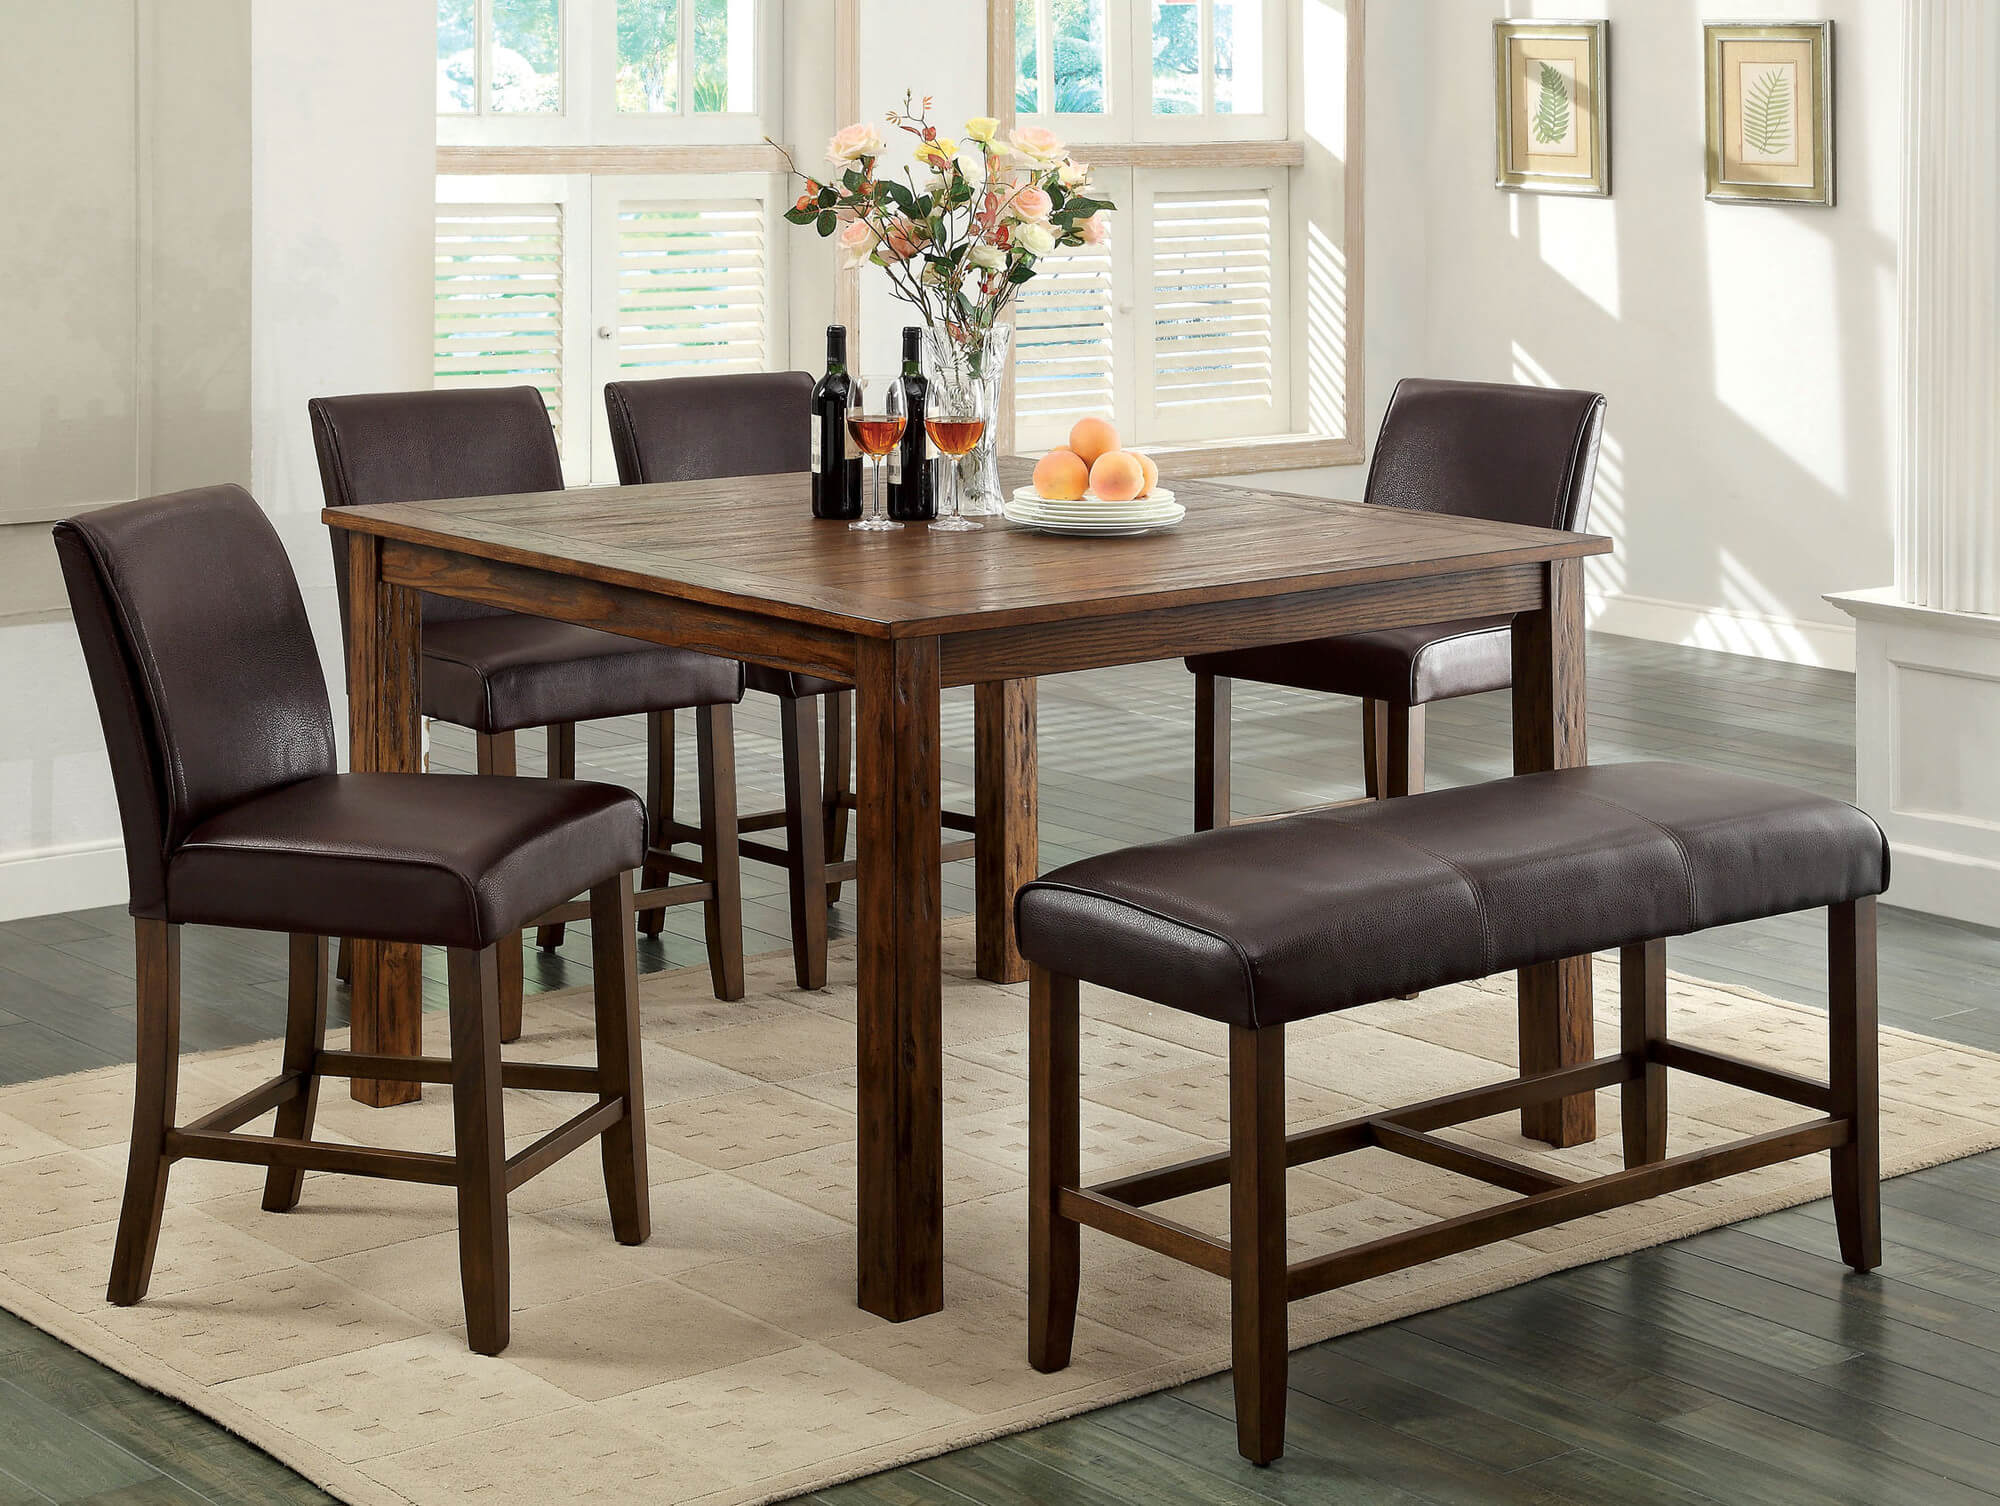 26 Dining Room Sets Big And Small With Bench Seating 2021